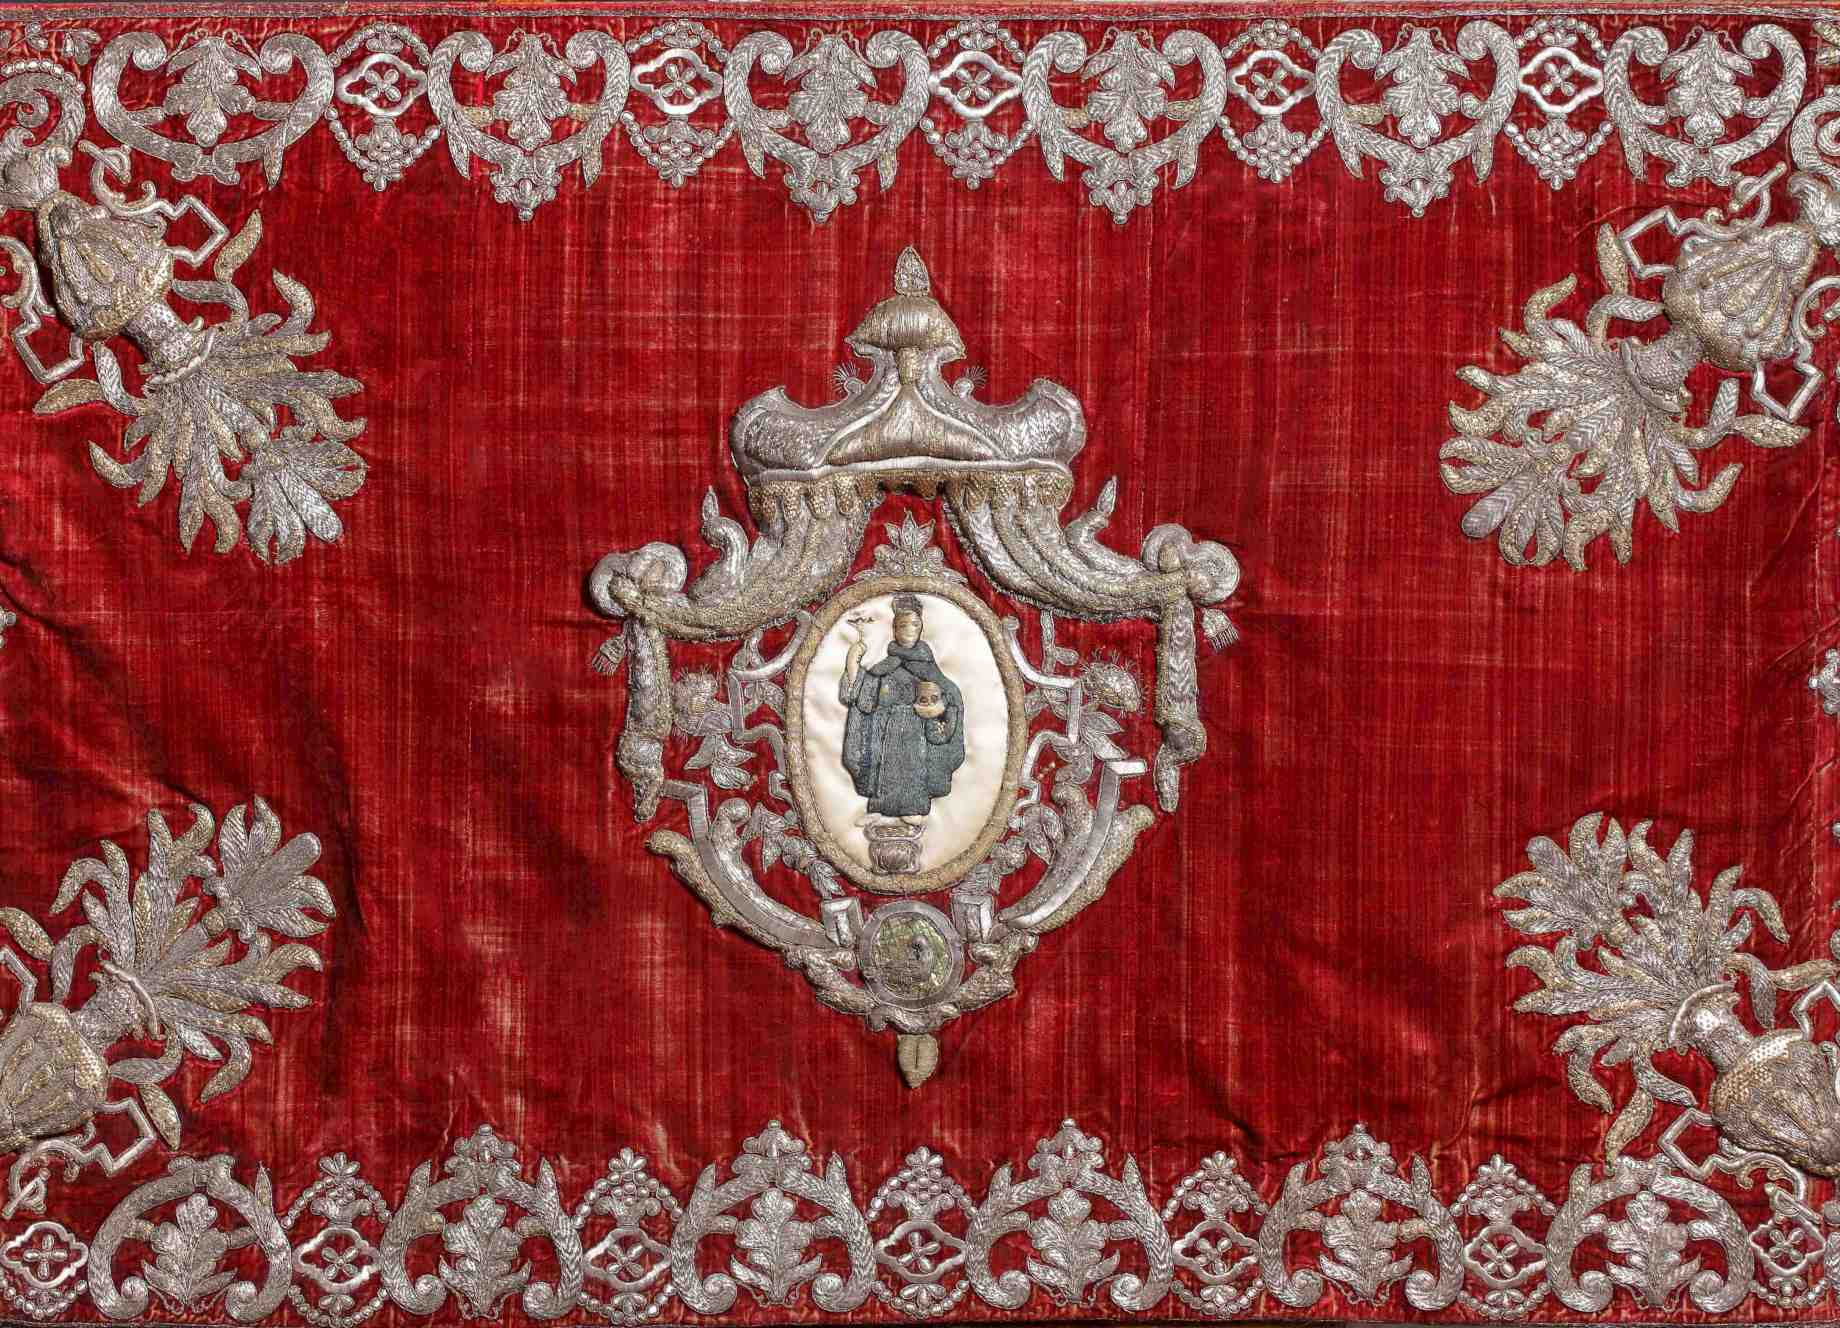 Spanish Embroidery in the New World Church: Models and Modifications